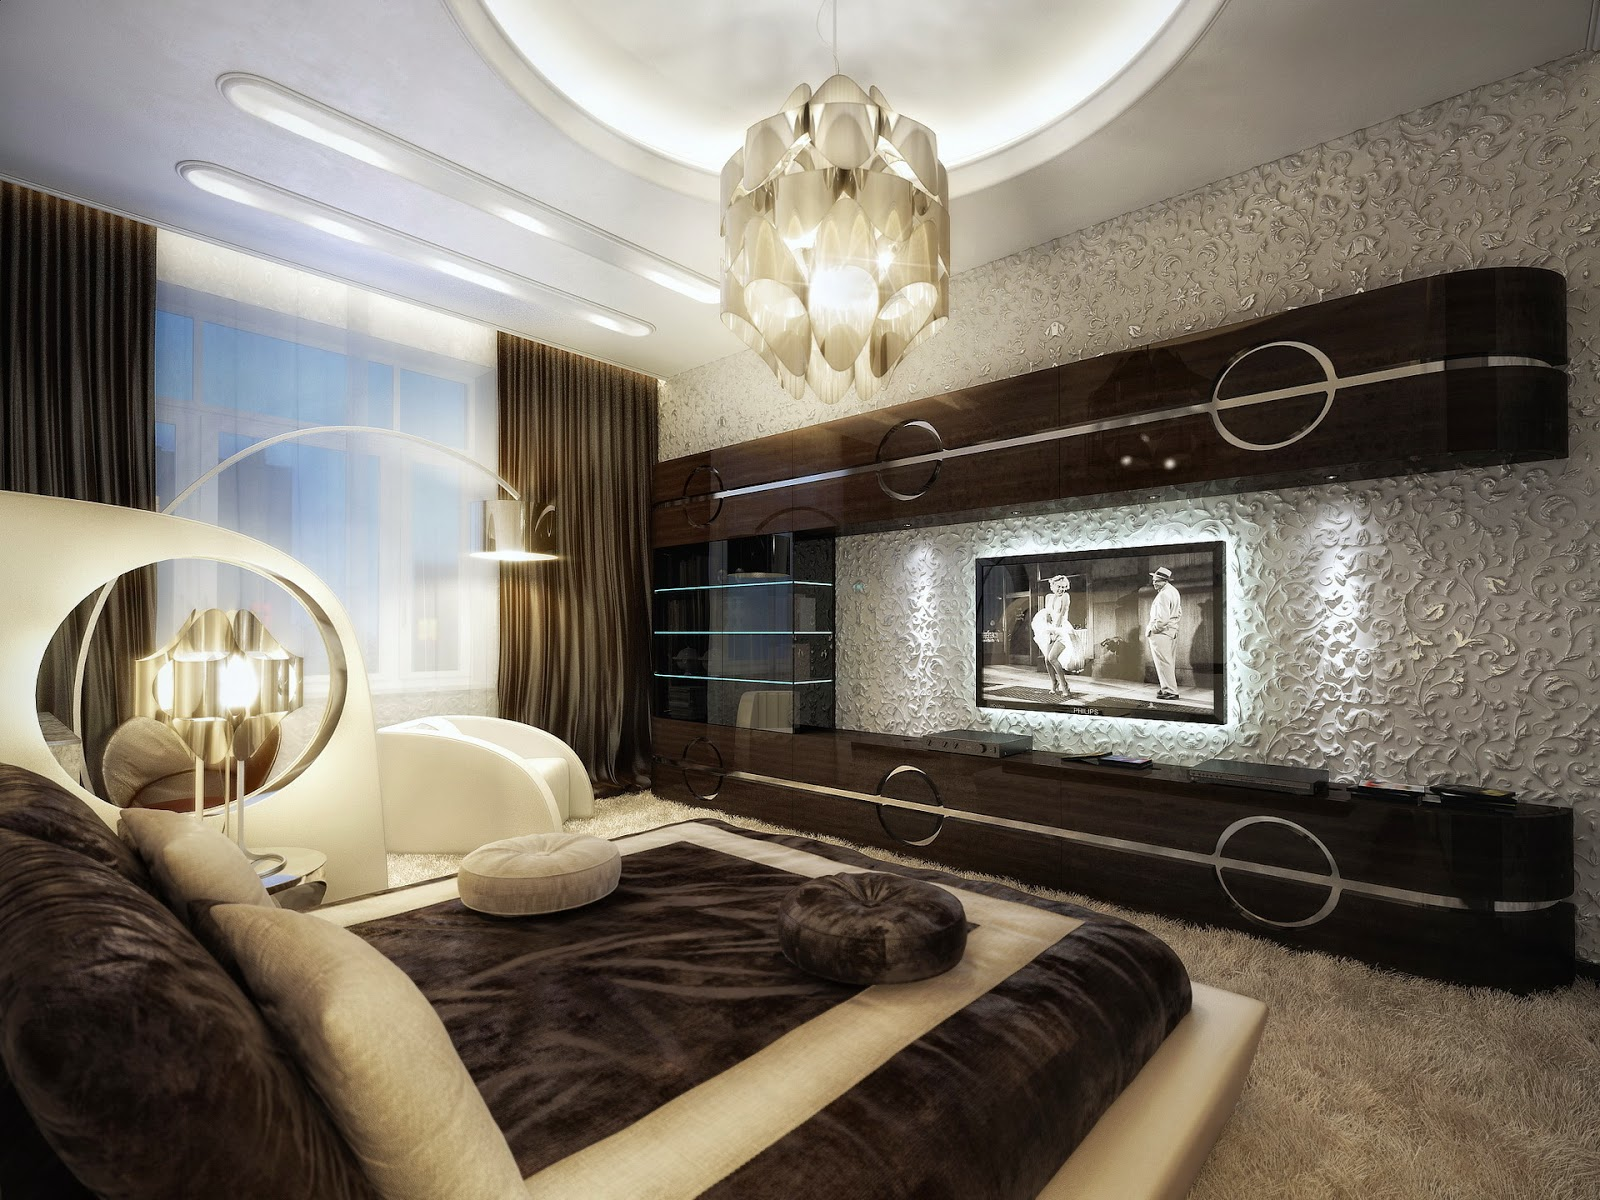 Dream Bedroom Decor Ideas For Young Girls